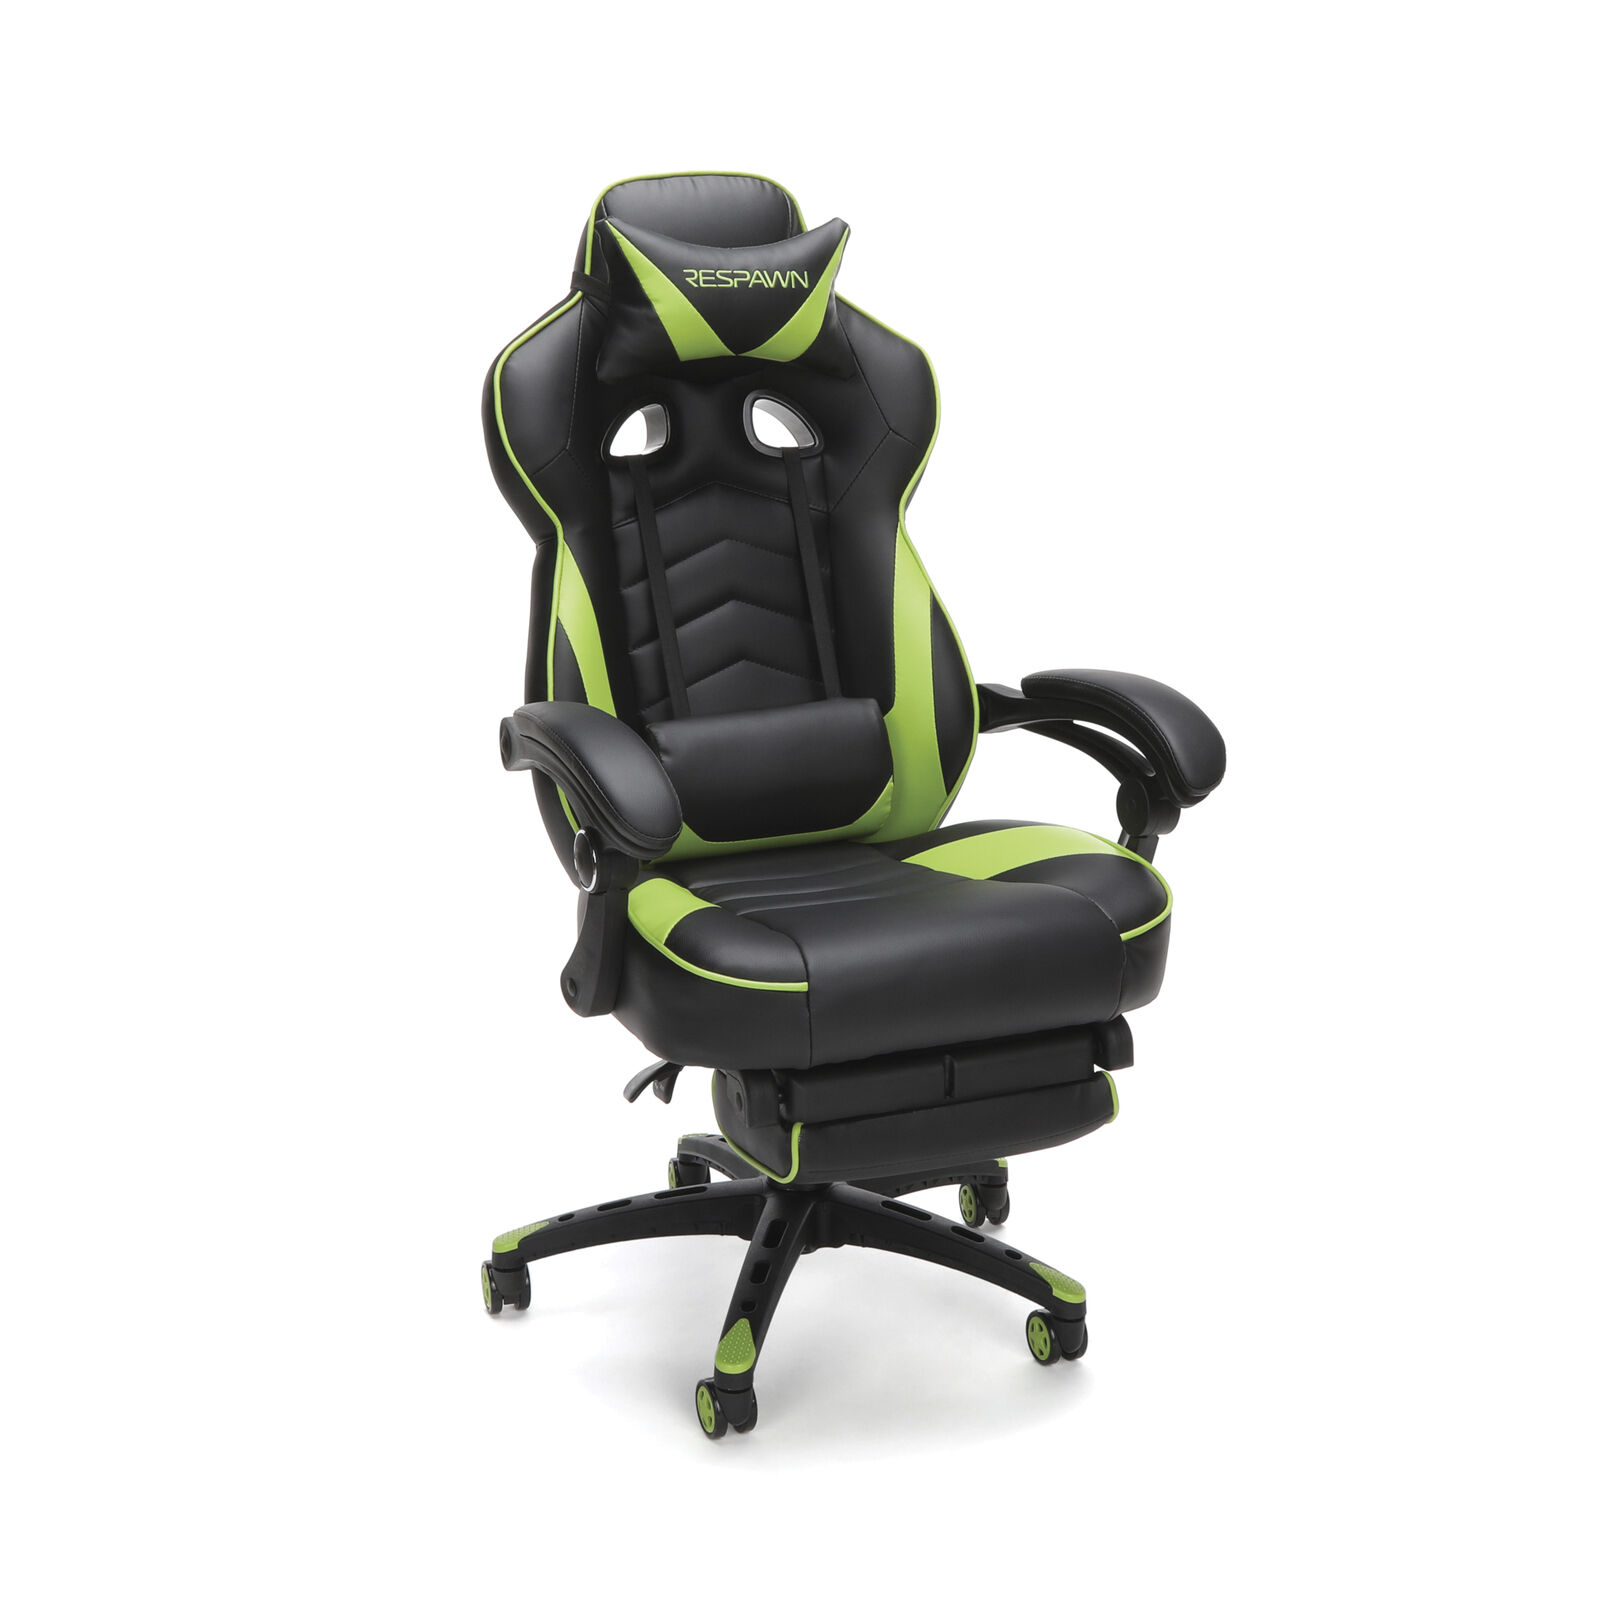 RESPAWN 110 Racing Style Gaming Chair, Reclining Ergonomic L